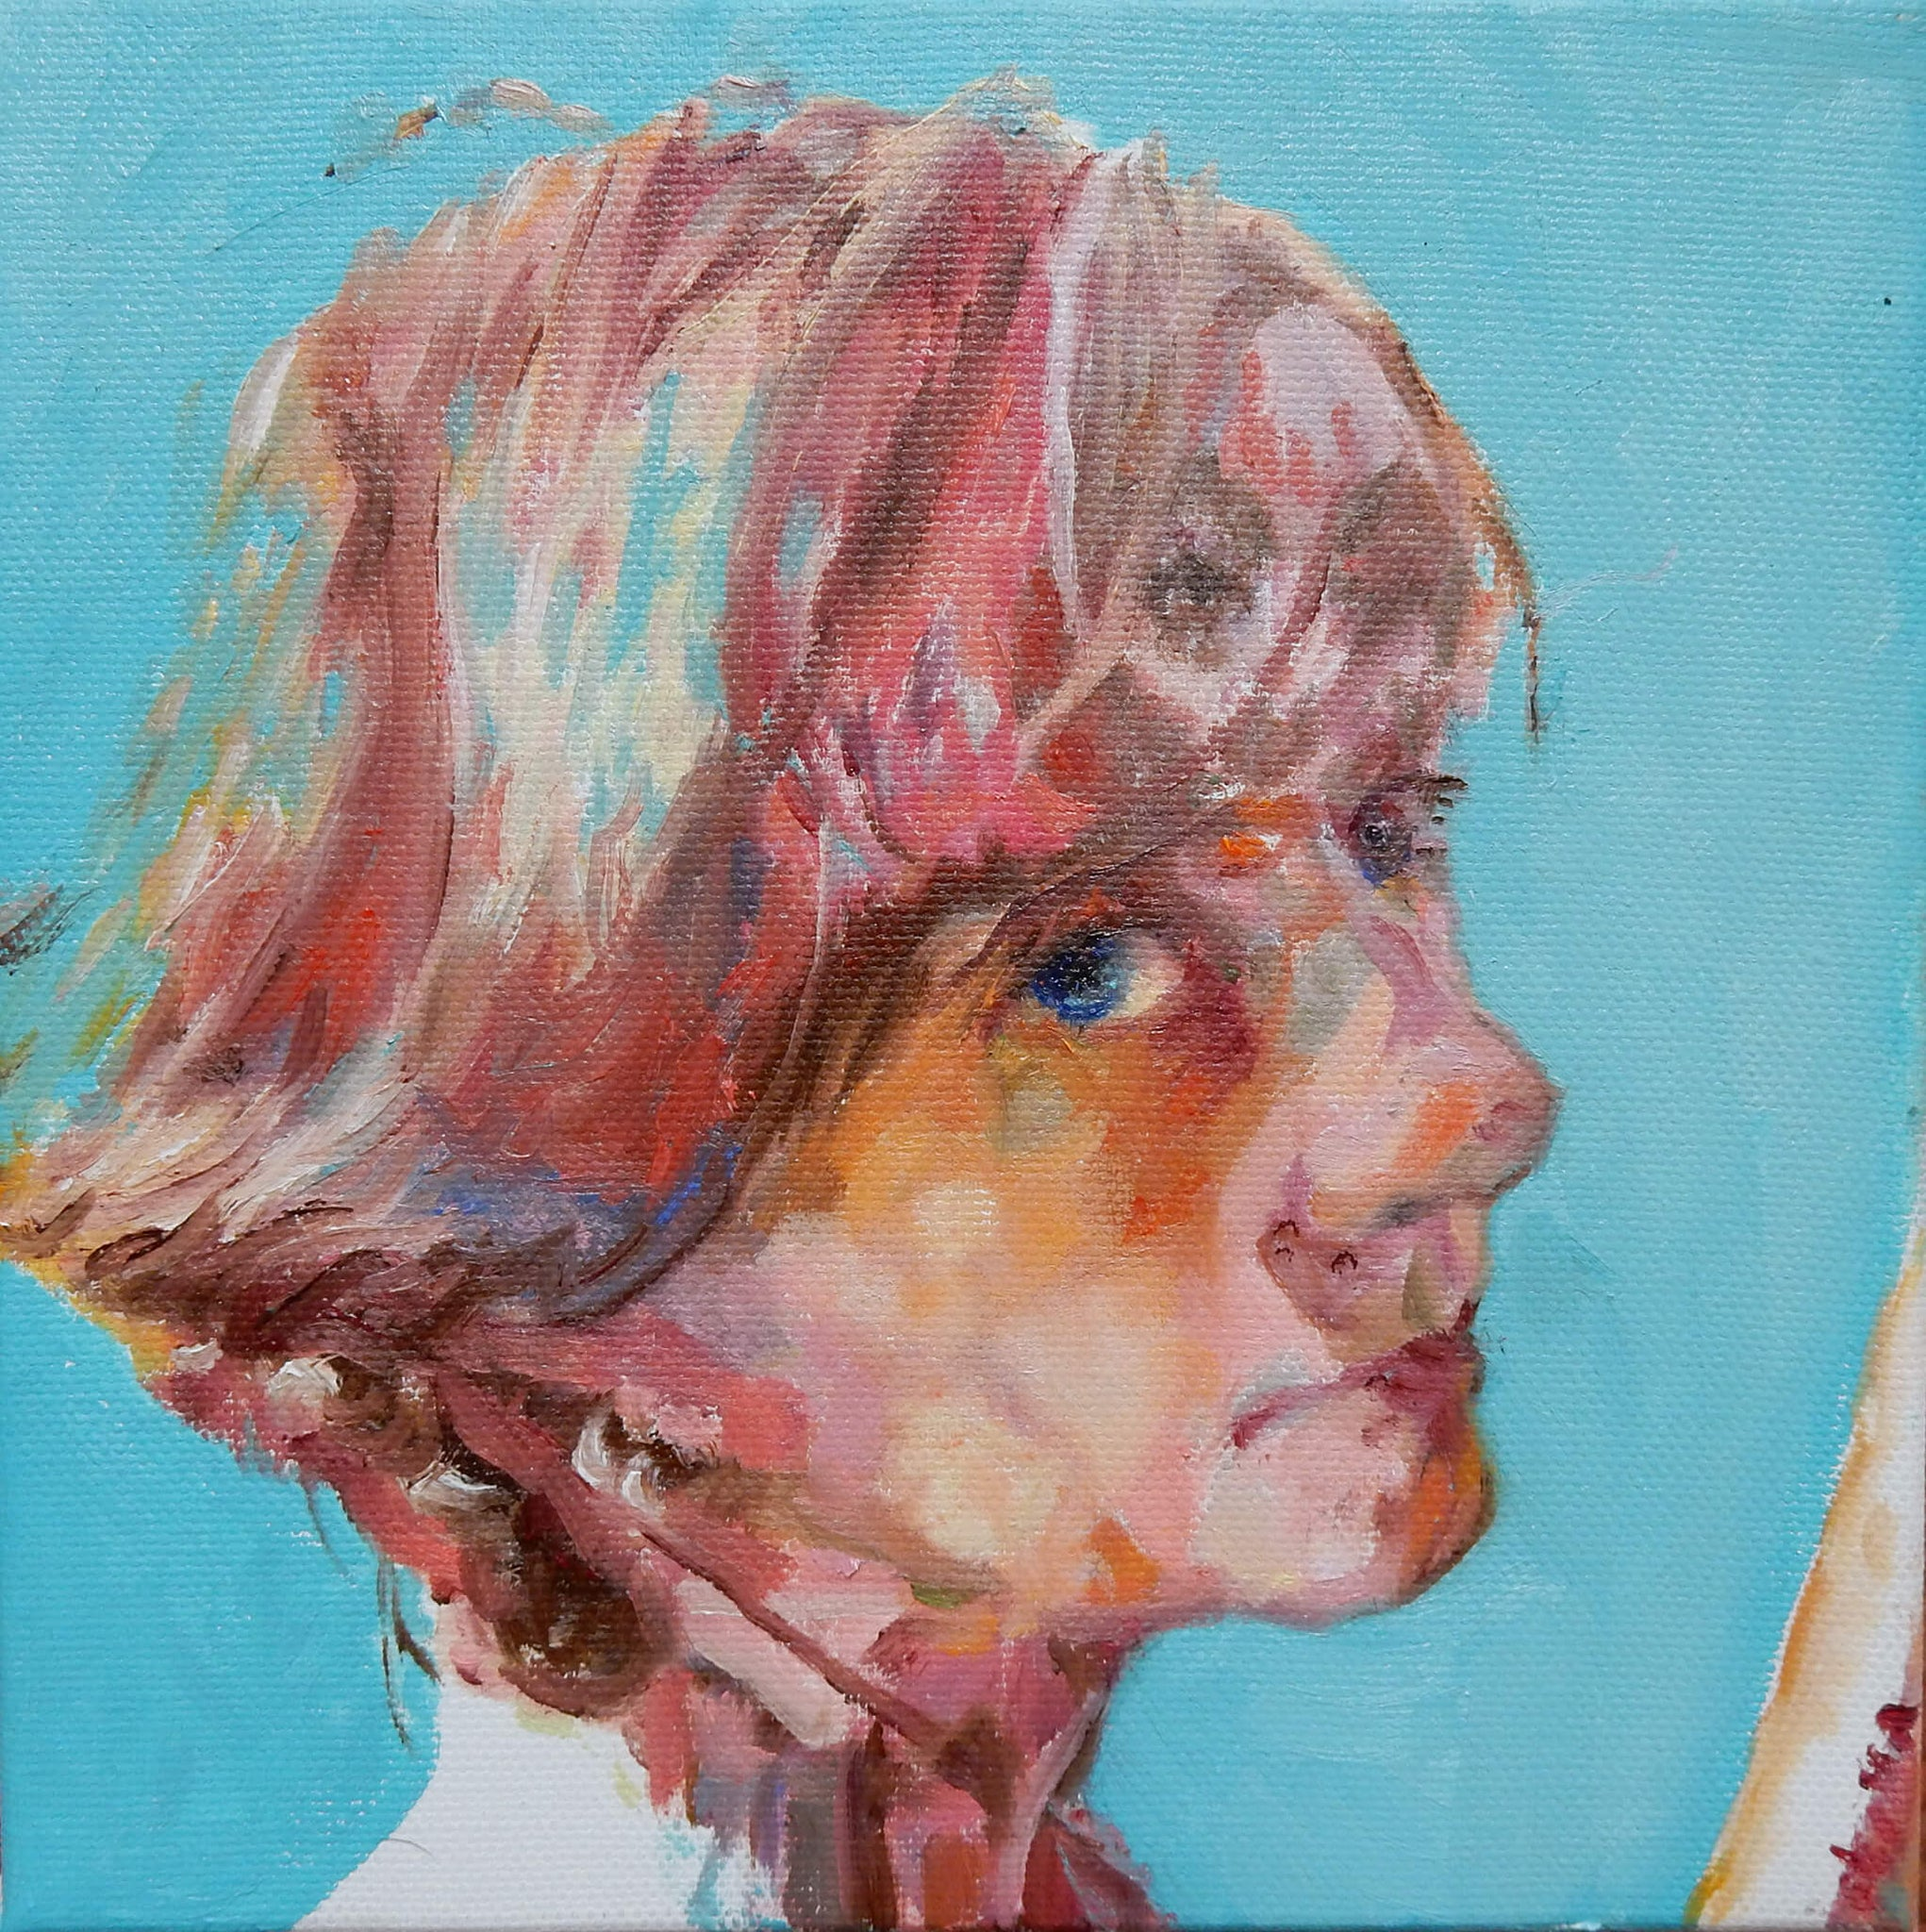 Self-portrait in oils on canvas artwork by Stella Tooth.